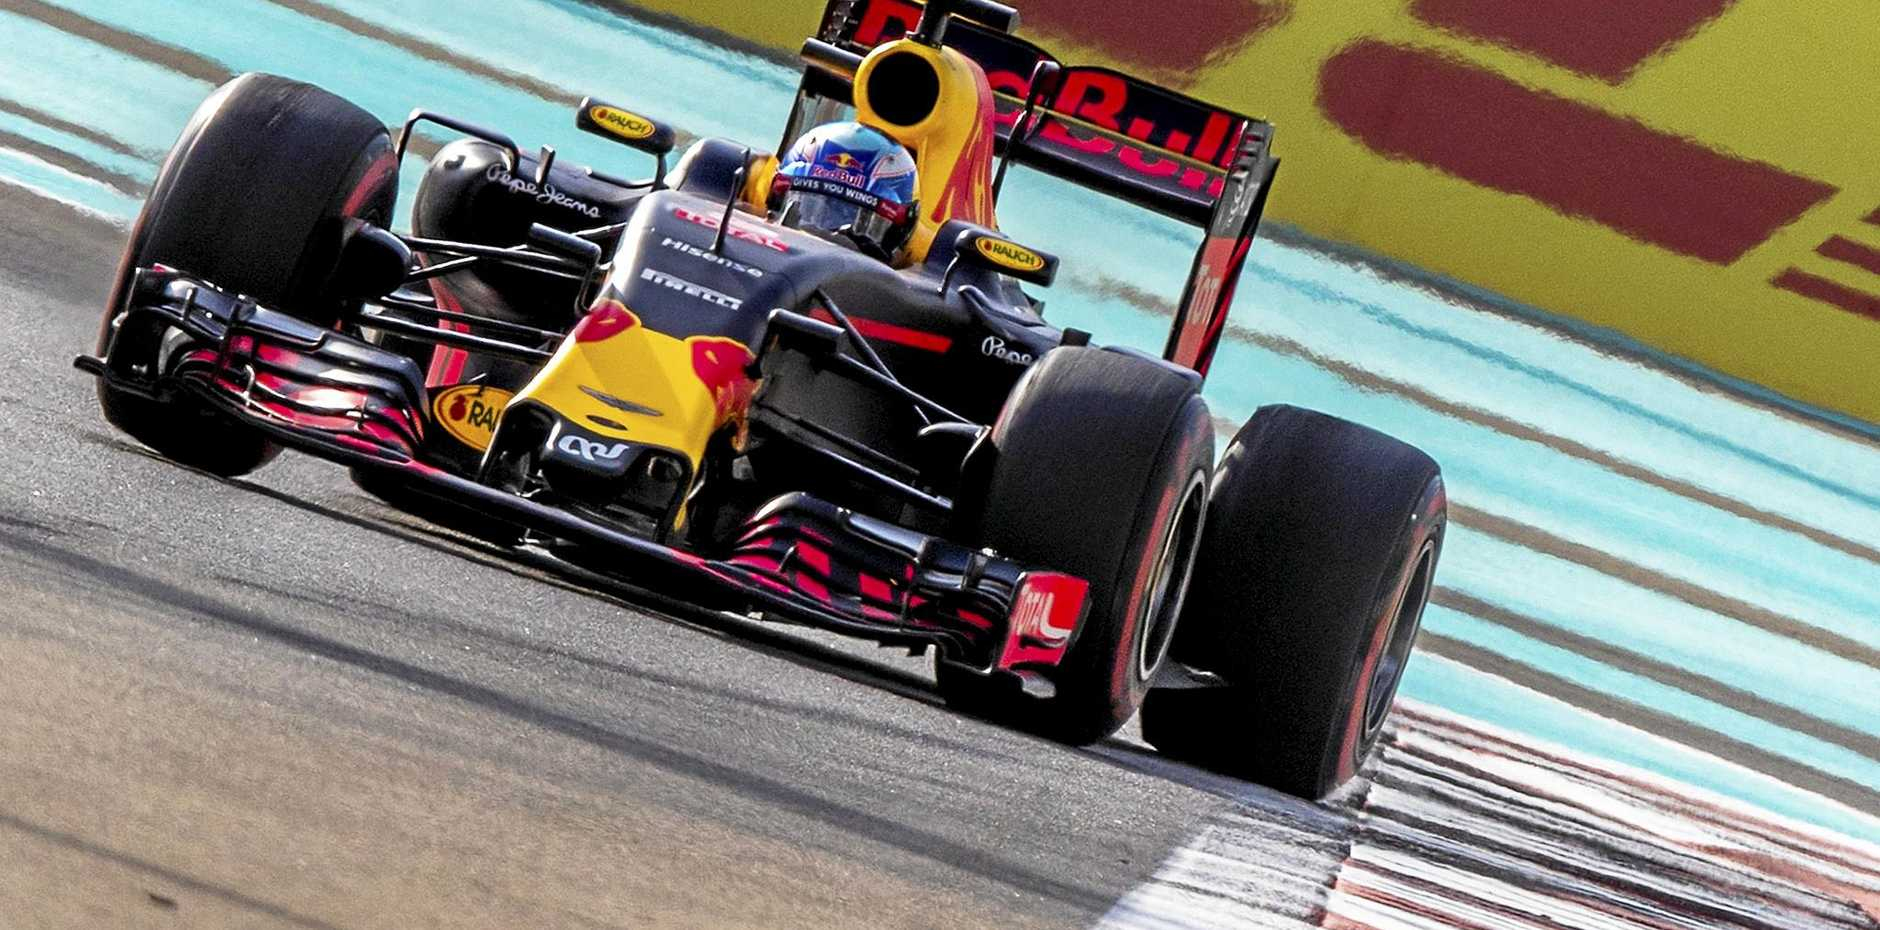 Daniel Ricciardo, of Red Bull Racing, in action  at Yas Marina Circuit in Abu Dhab.i